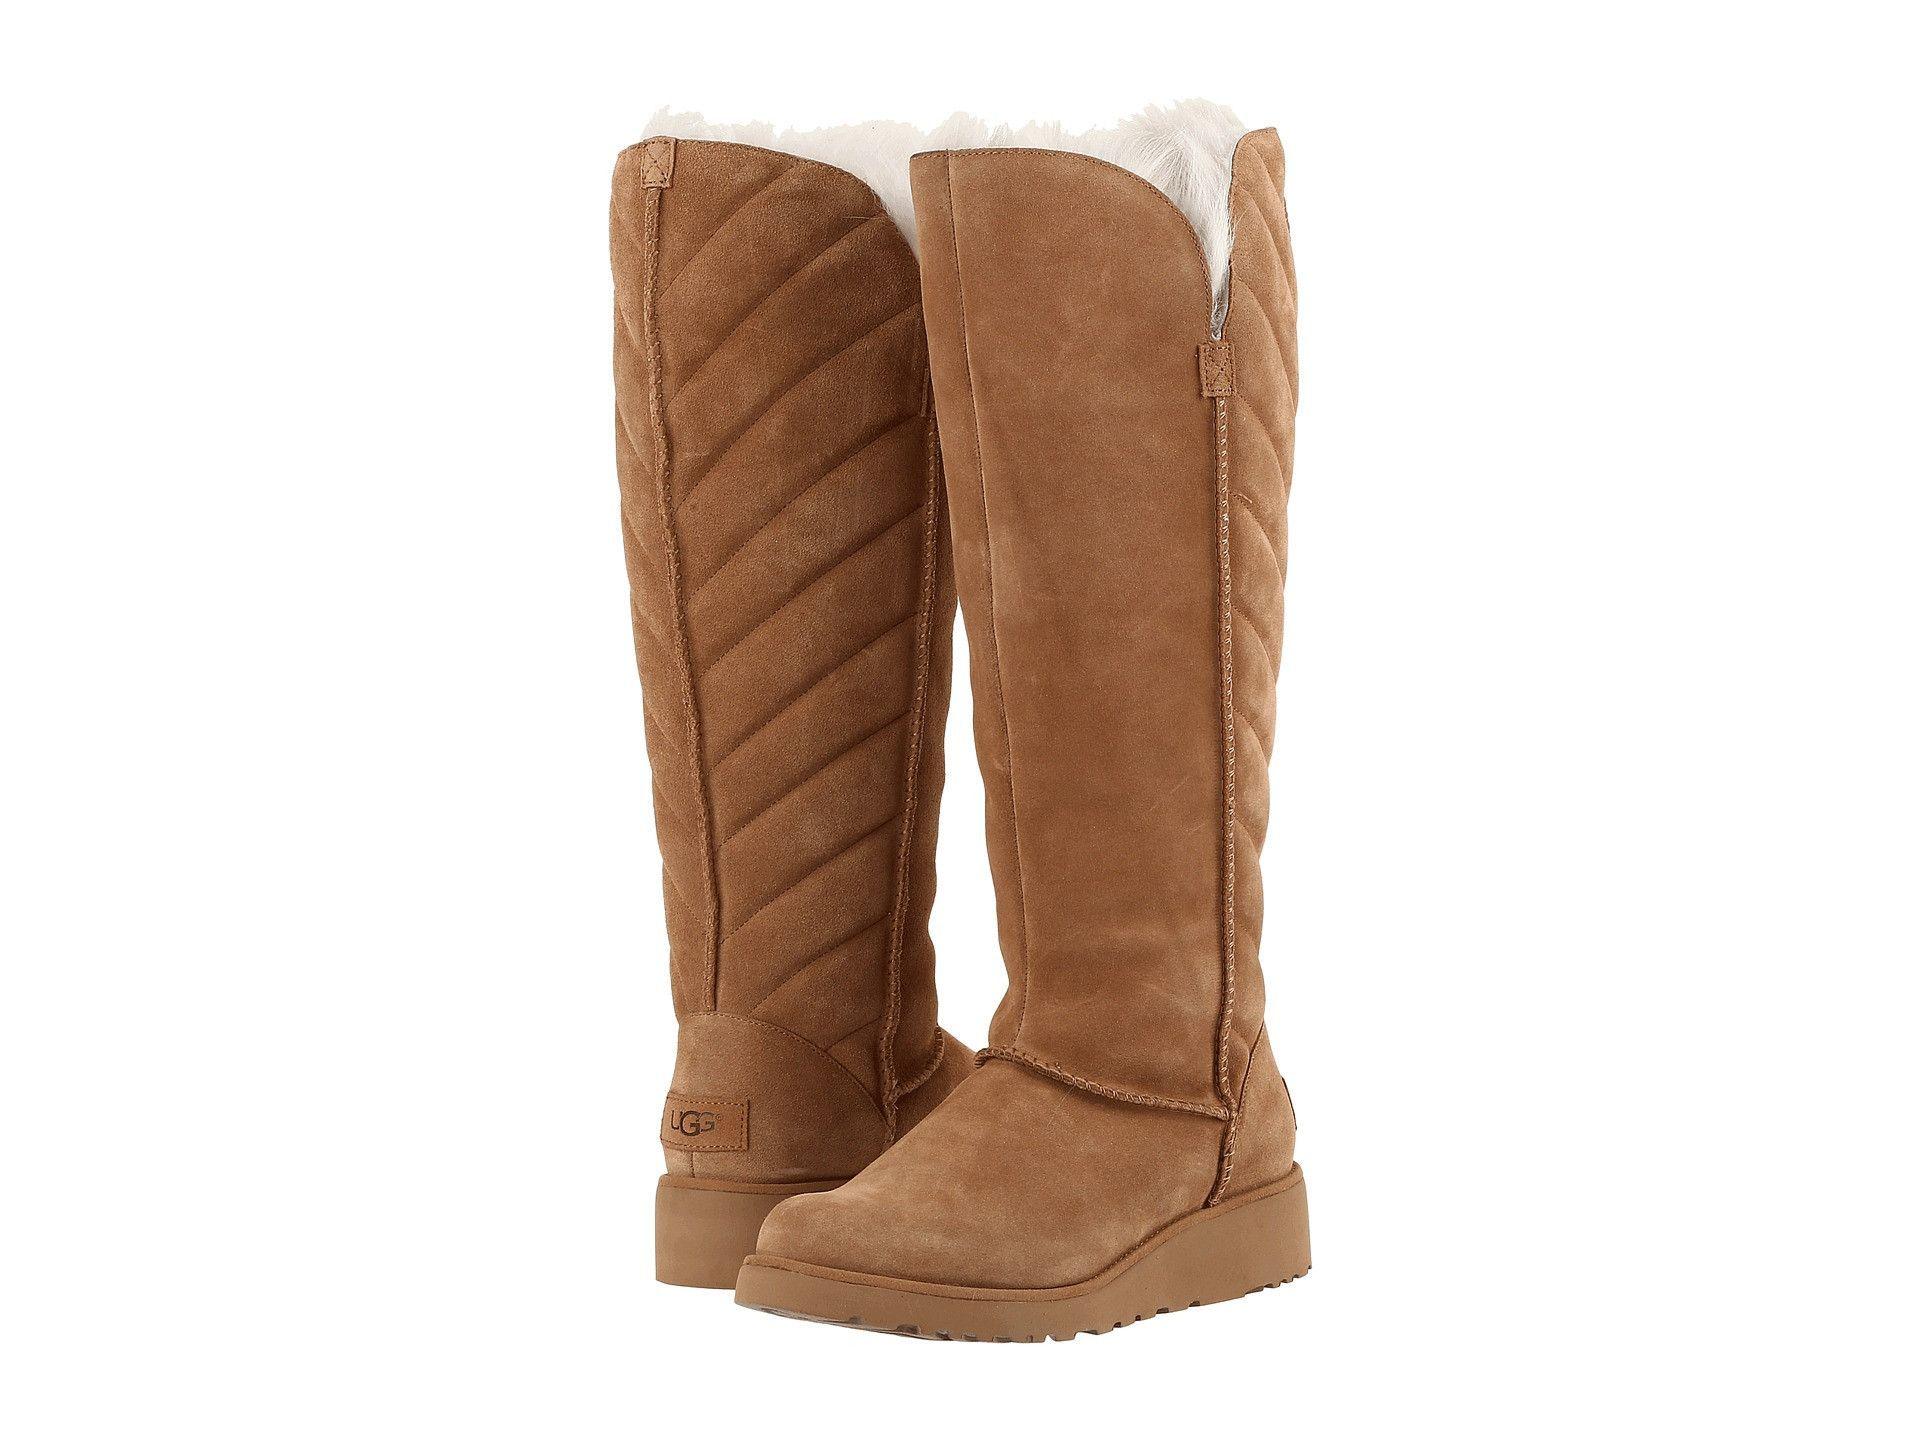 c3684261e70 UGG Rosalind Women | Chestnut (1012390) | Products | Uggs, Shoes, Boots